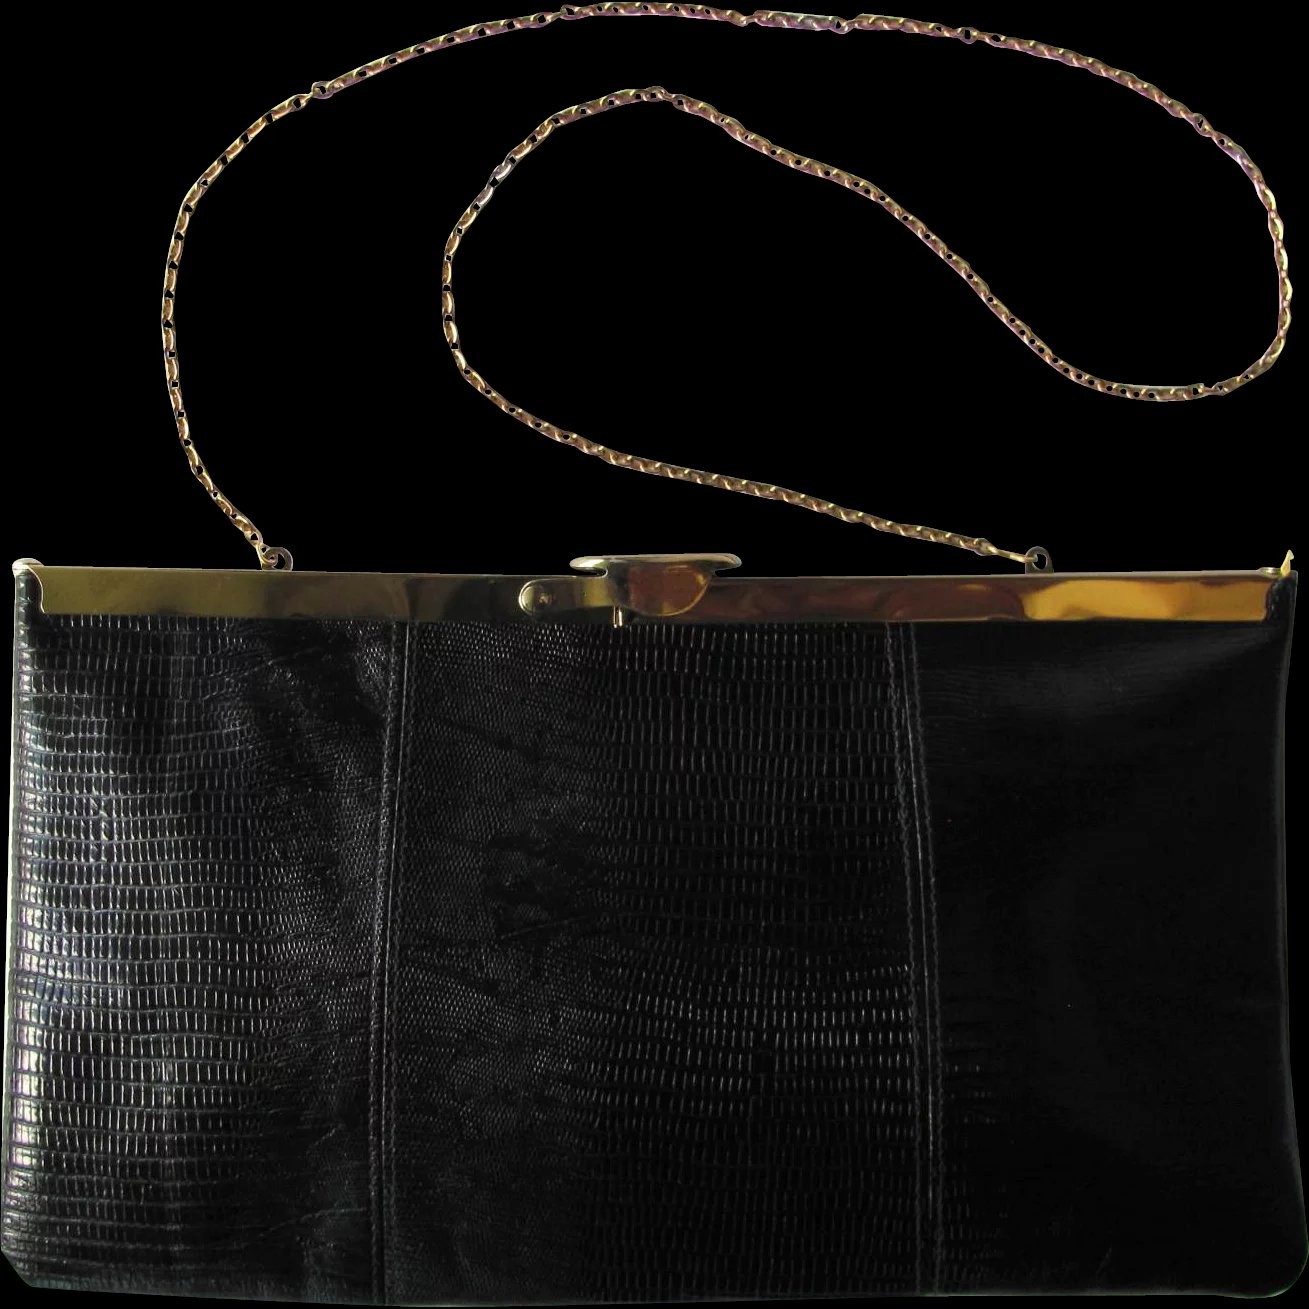 cb985dcd3c5b Vintage 1950 s Black Leather Convertible Clutch with Hinged Frame by    Whimsy